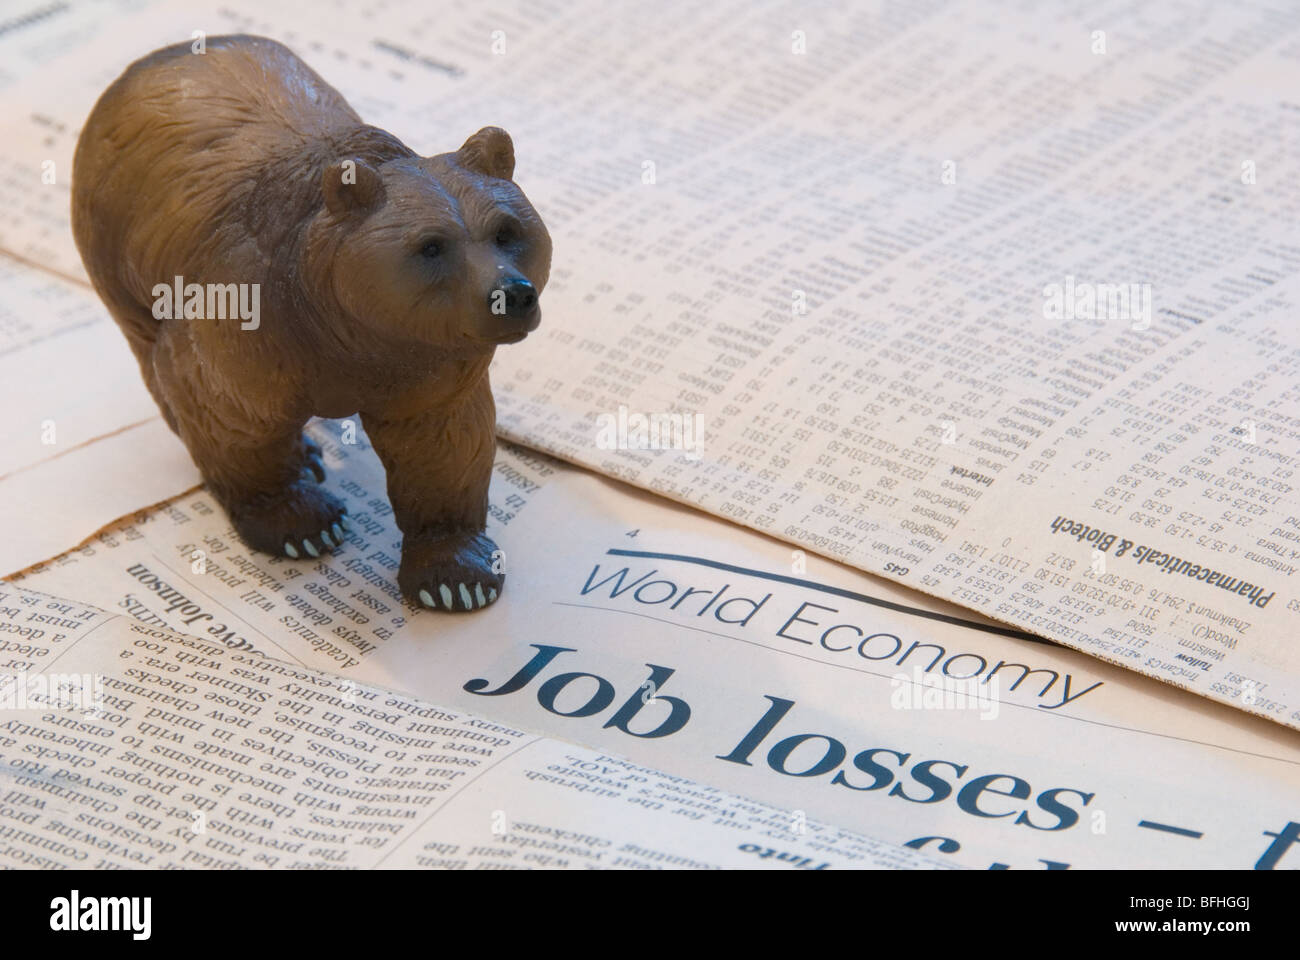 A Bear over the World Economy reports of Job Losses representing the Finance Markets Stock Photo